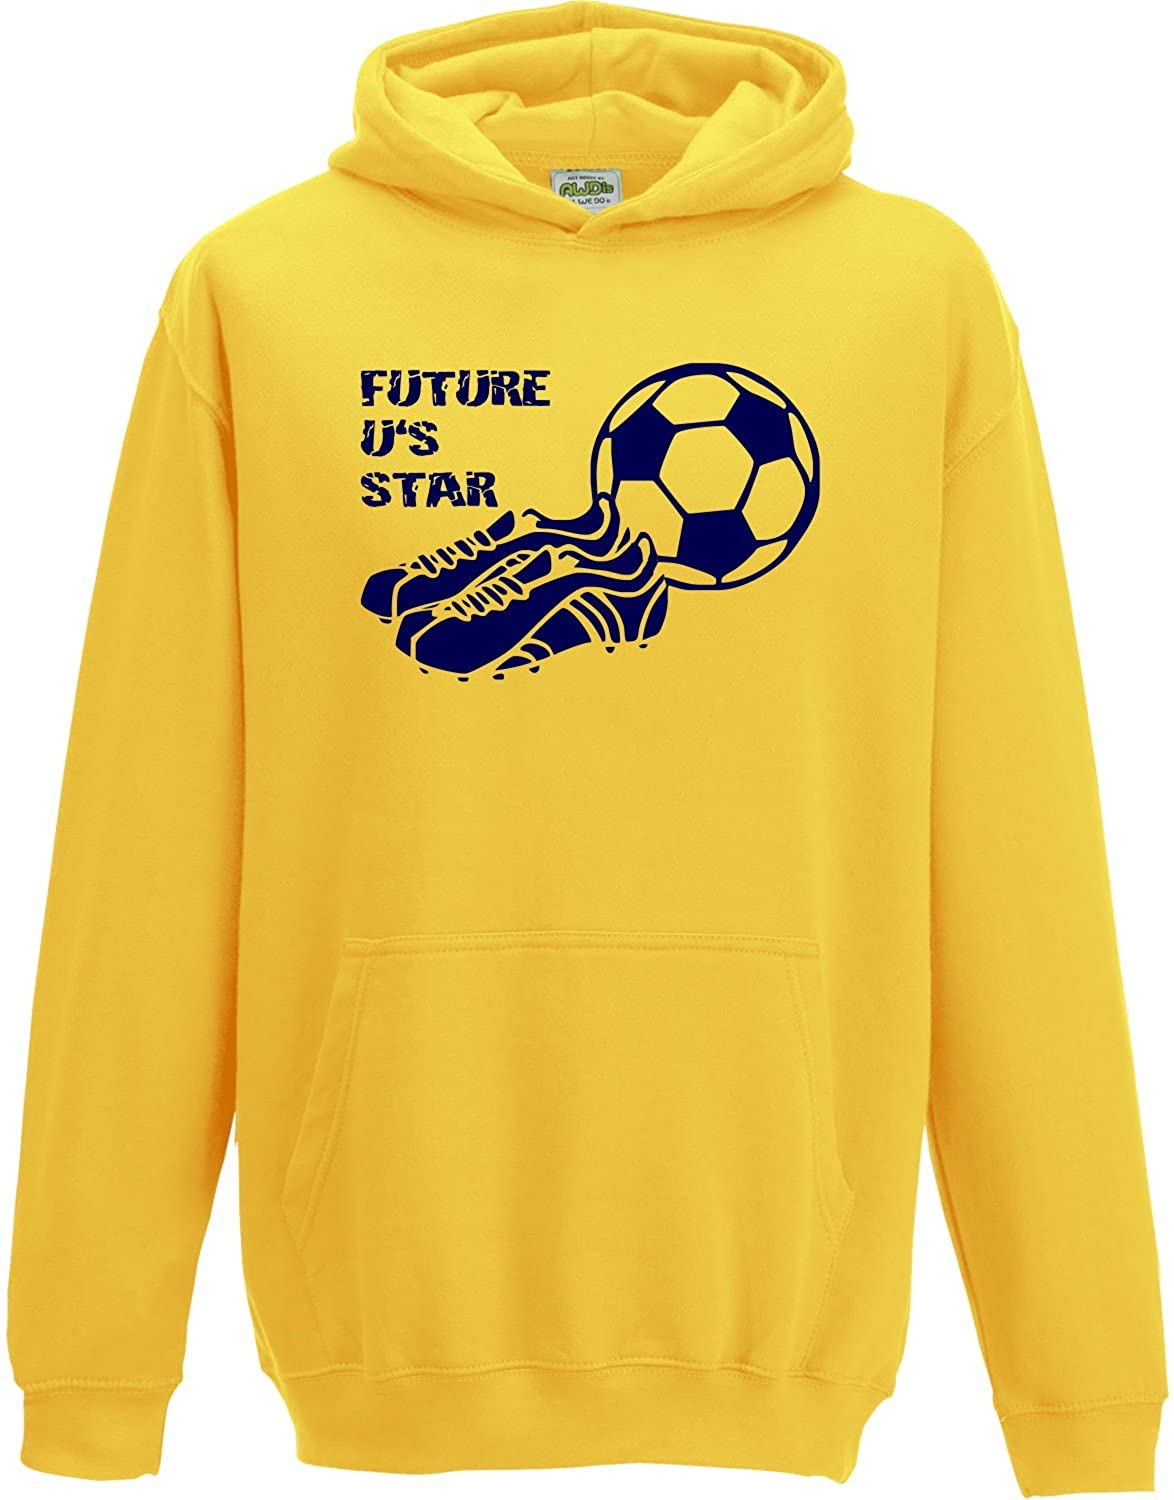 Hat-Trick Designs Oxford United Football Baby/Kids/Childrens Hoodie Sweatshirt-Yellow-Future Star-Unisex Gift